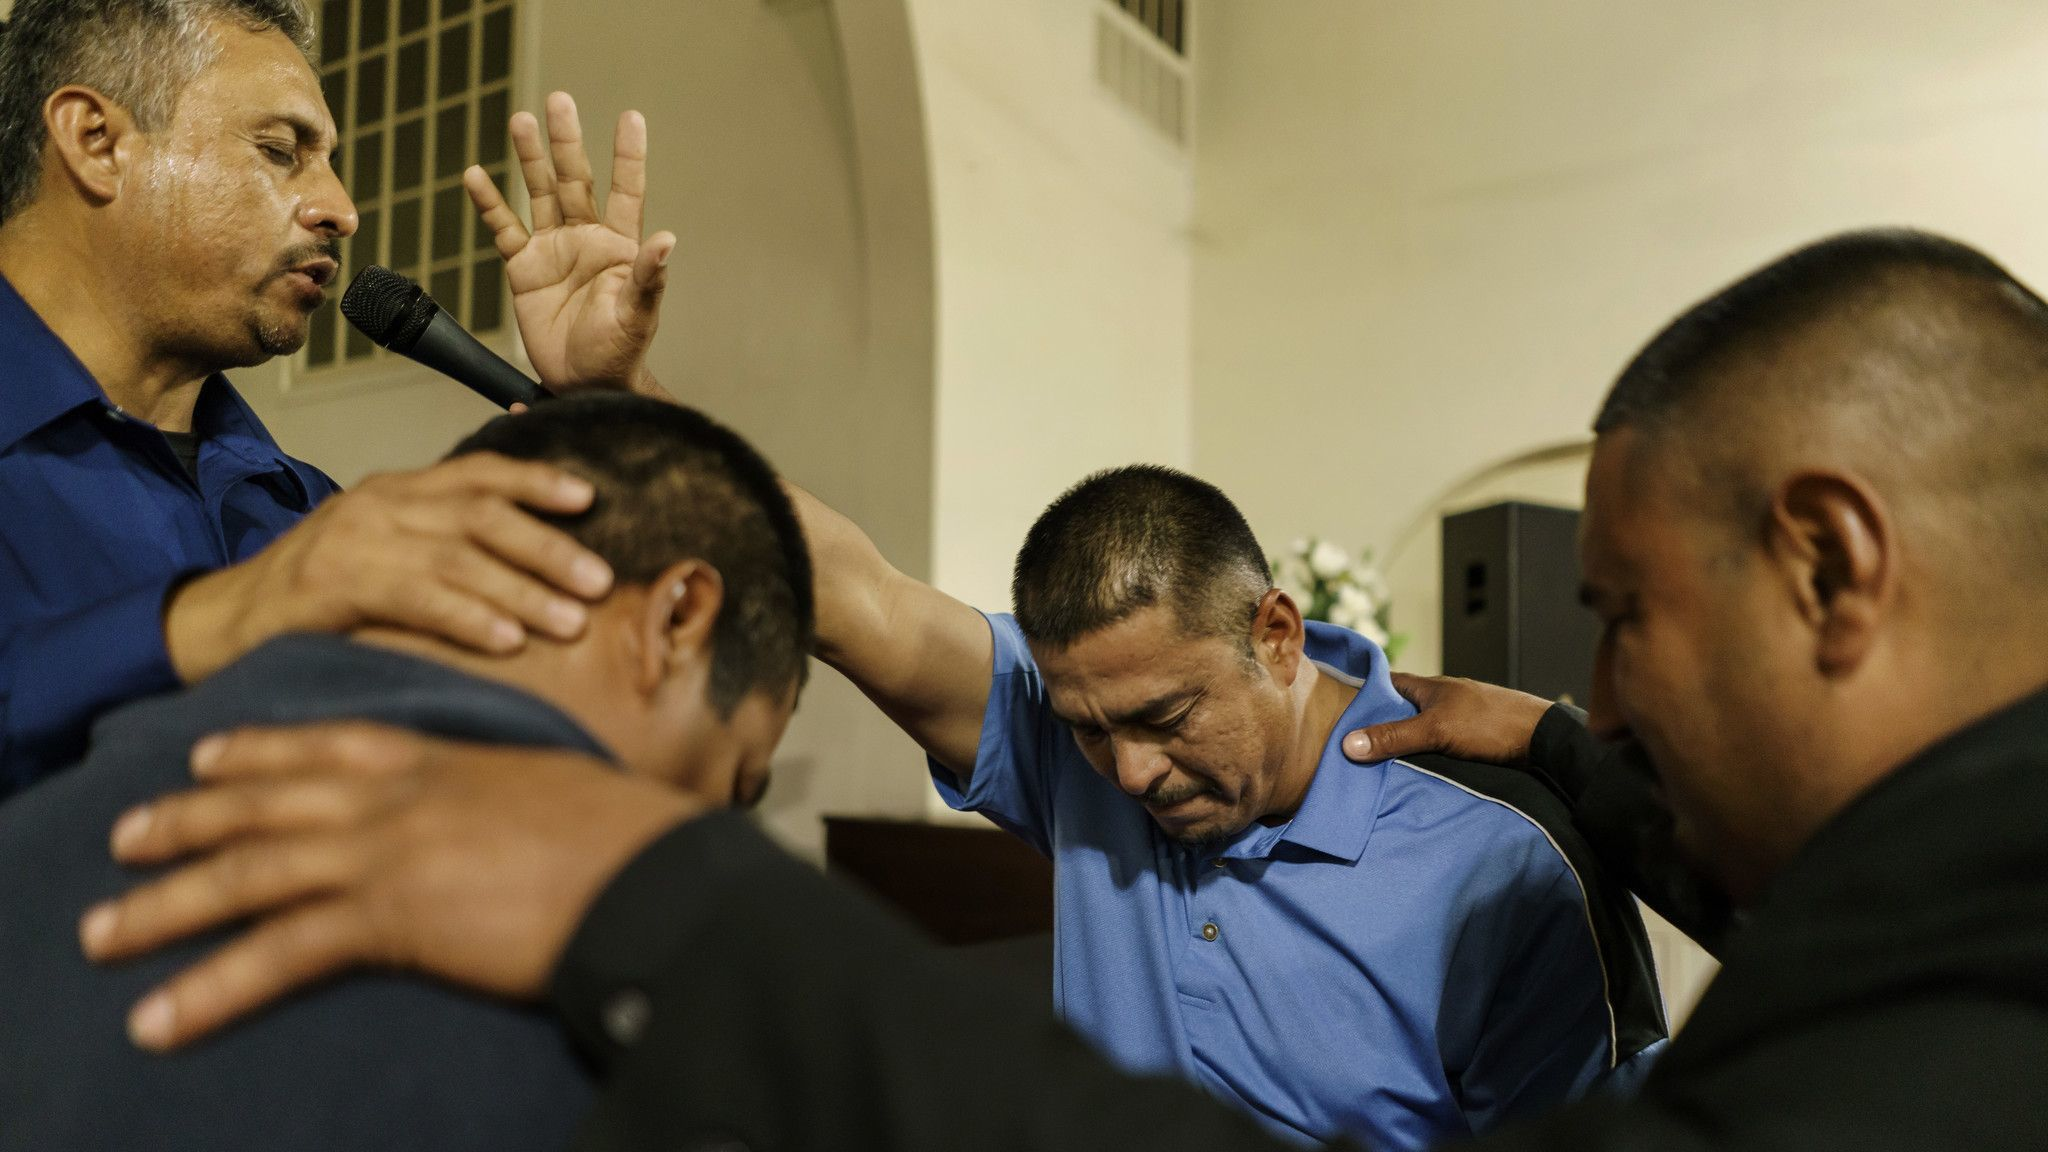 WASCO, CALIF. — WEDNESDAY, MARCH 7, 2018: Pastor Guillermo Aceves, far left, and other El Aposento